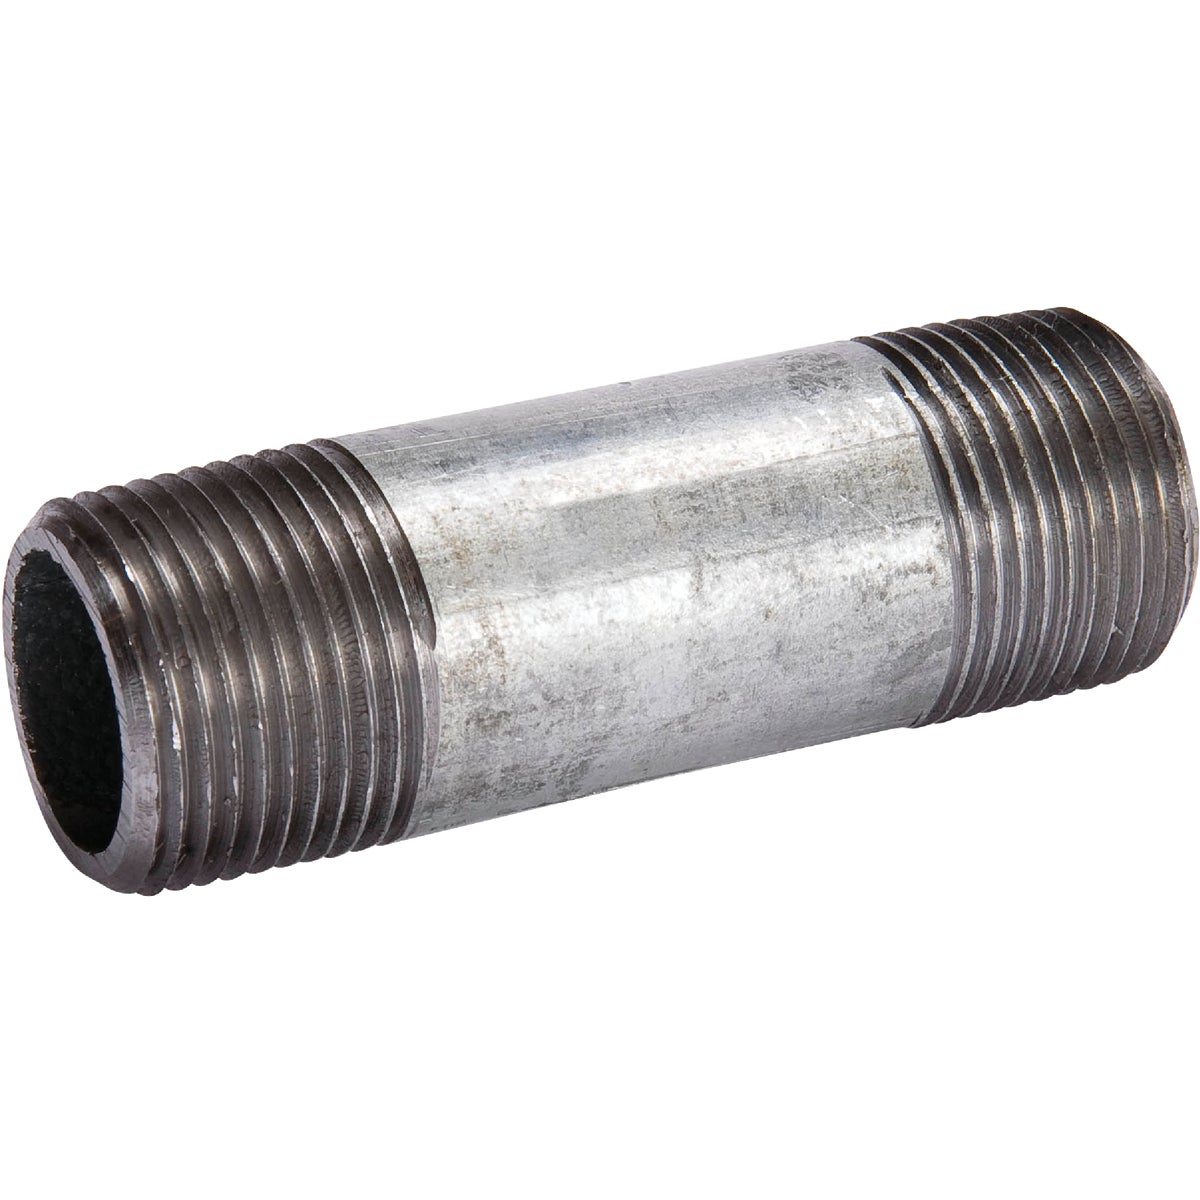 1-1/4X2-1/2 GALV NIPPLE - 10703 by Southland Pipe Nippl